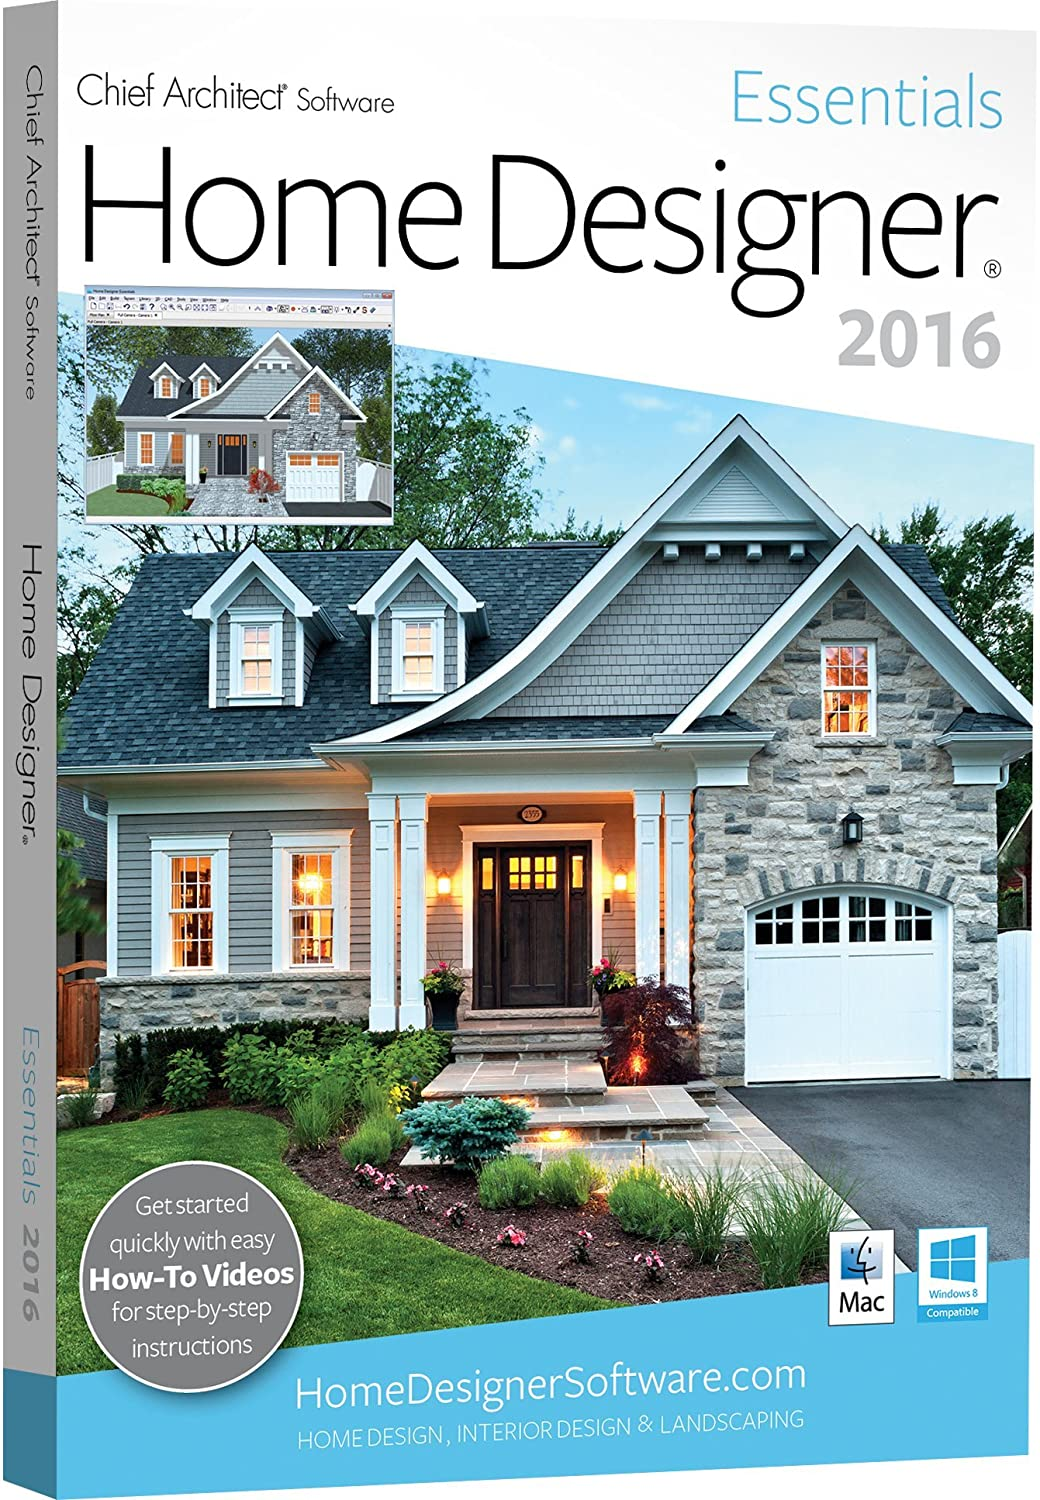 Chief Architect Home Designer Essentials 2016 Amazon In Software